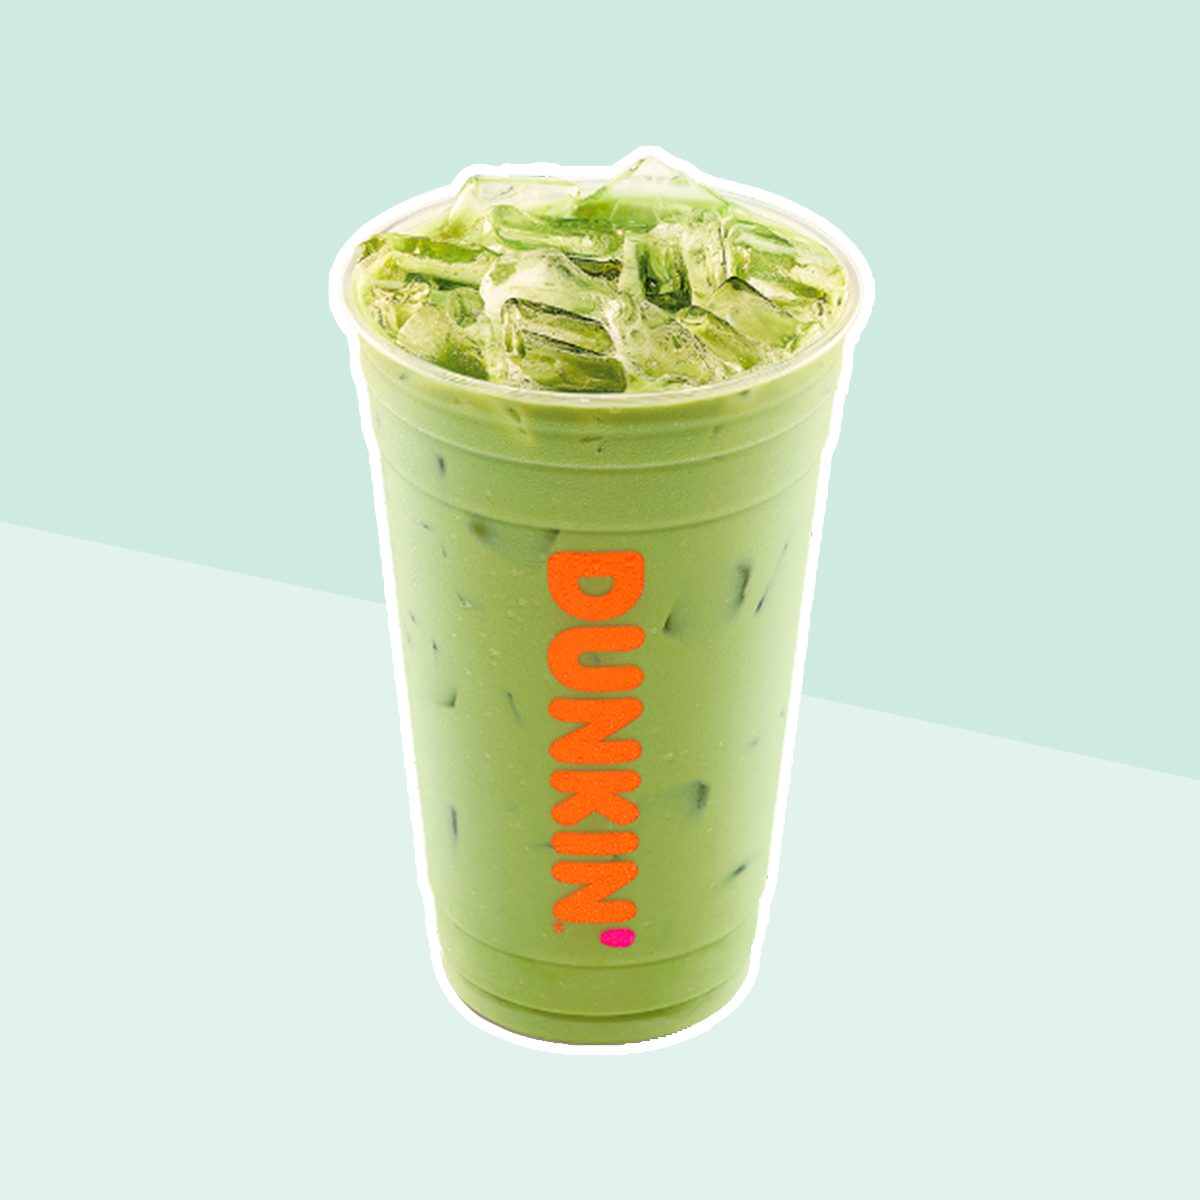 ICED MATCHA LATTE from Dunkin Donuts